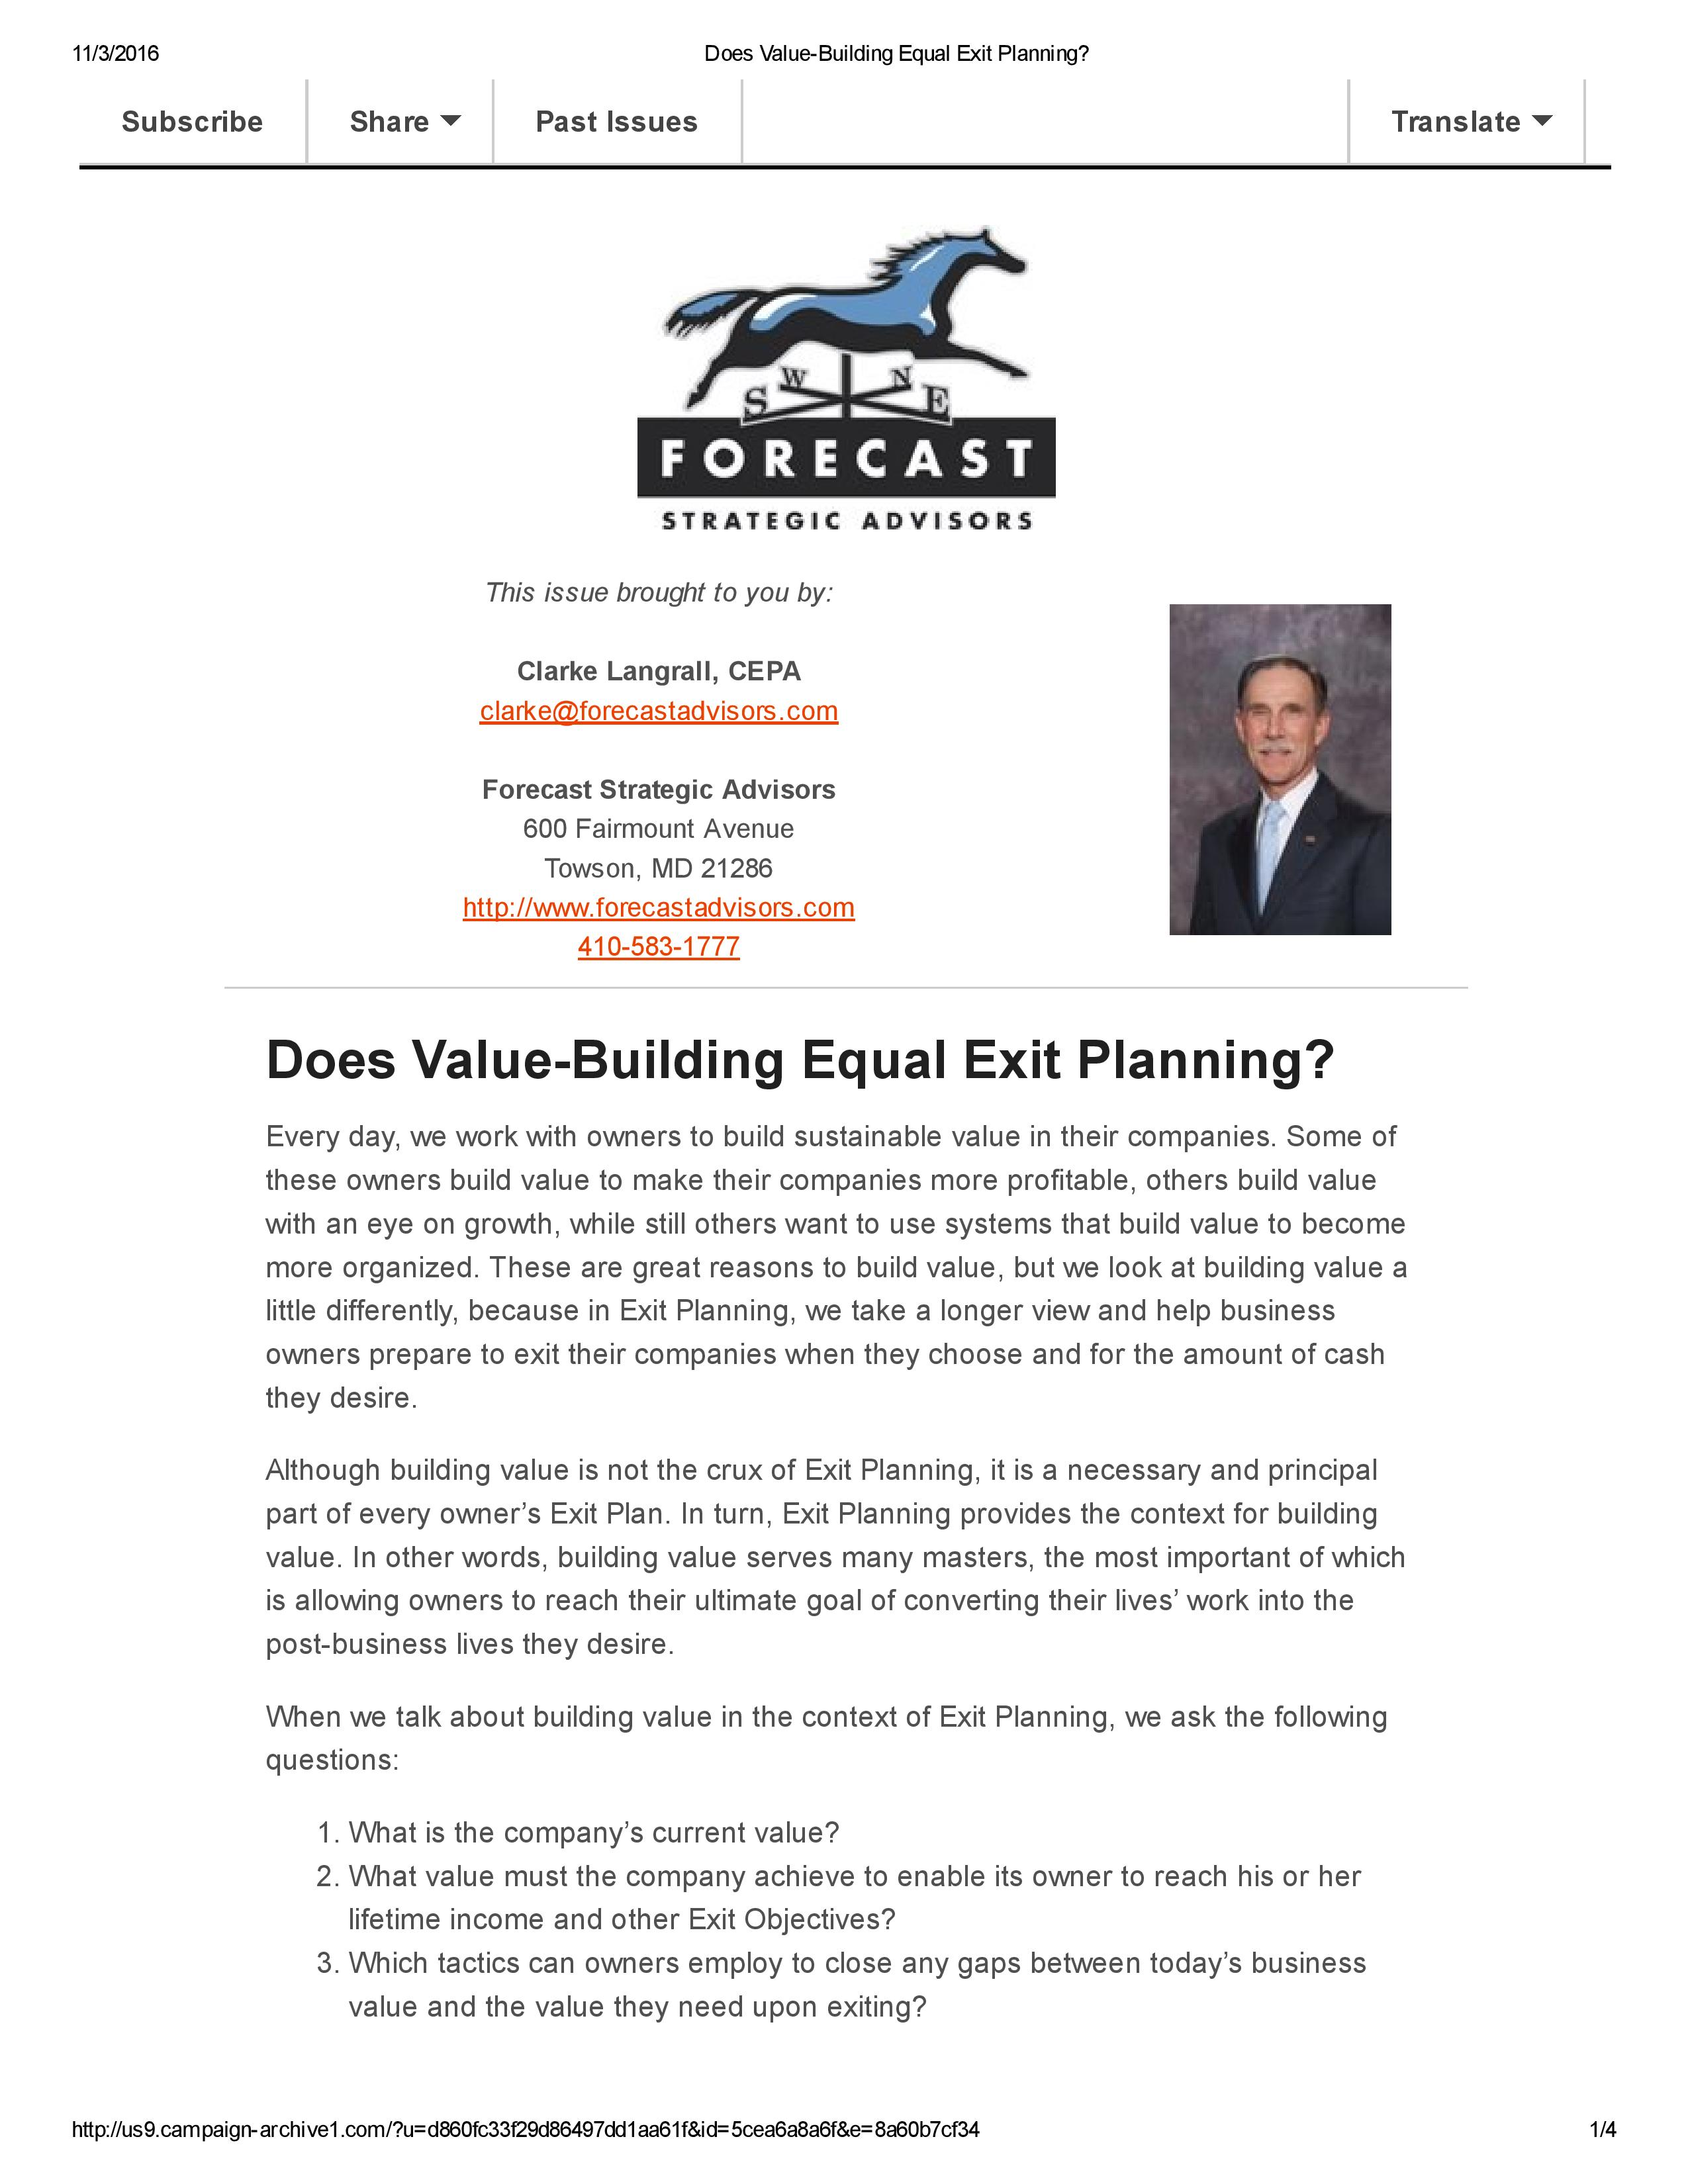 Does Value Building Equal Exit Planning Forecast Strategic Advisors Business Owner Planning Exit Planning